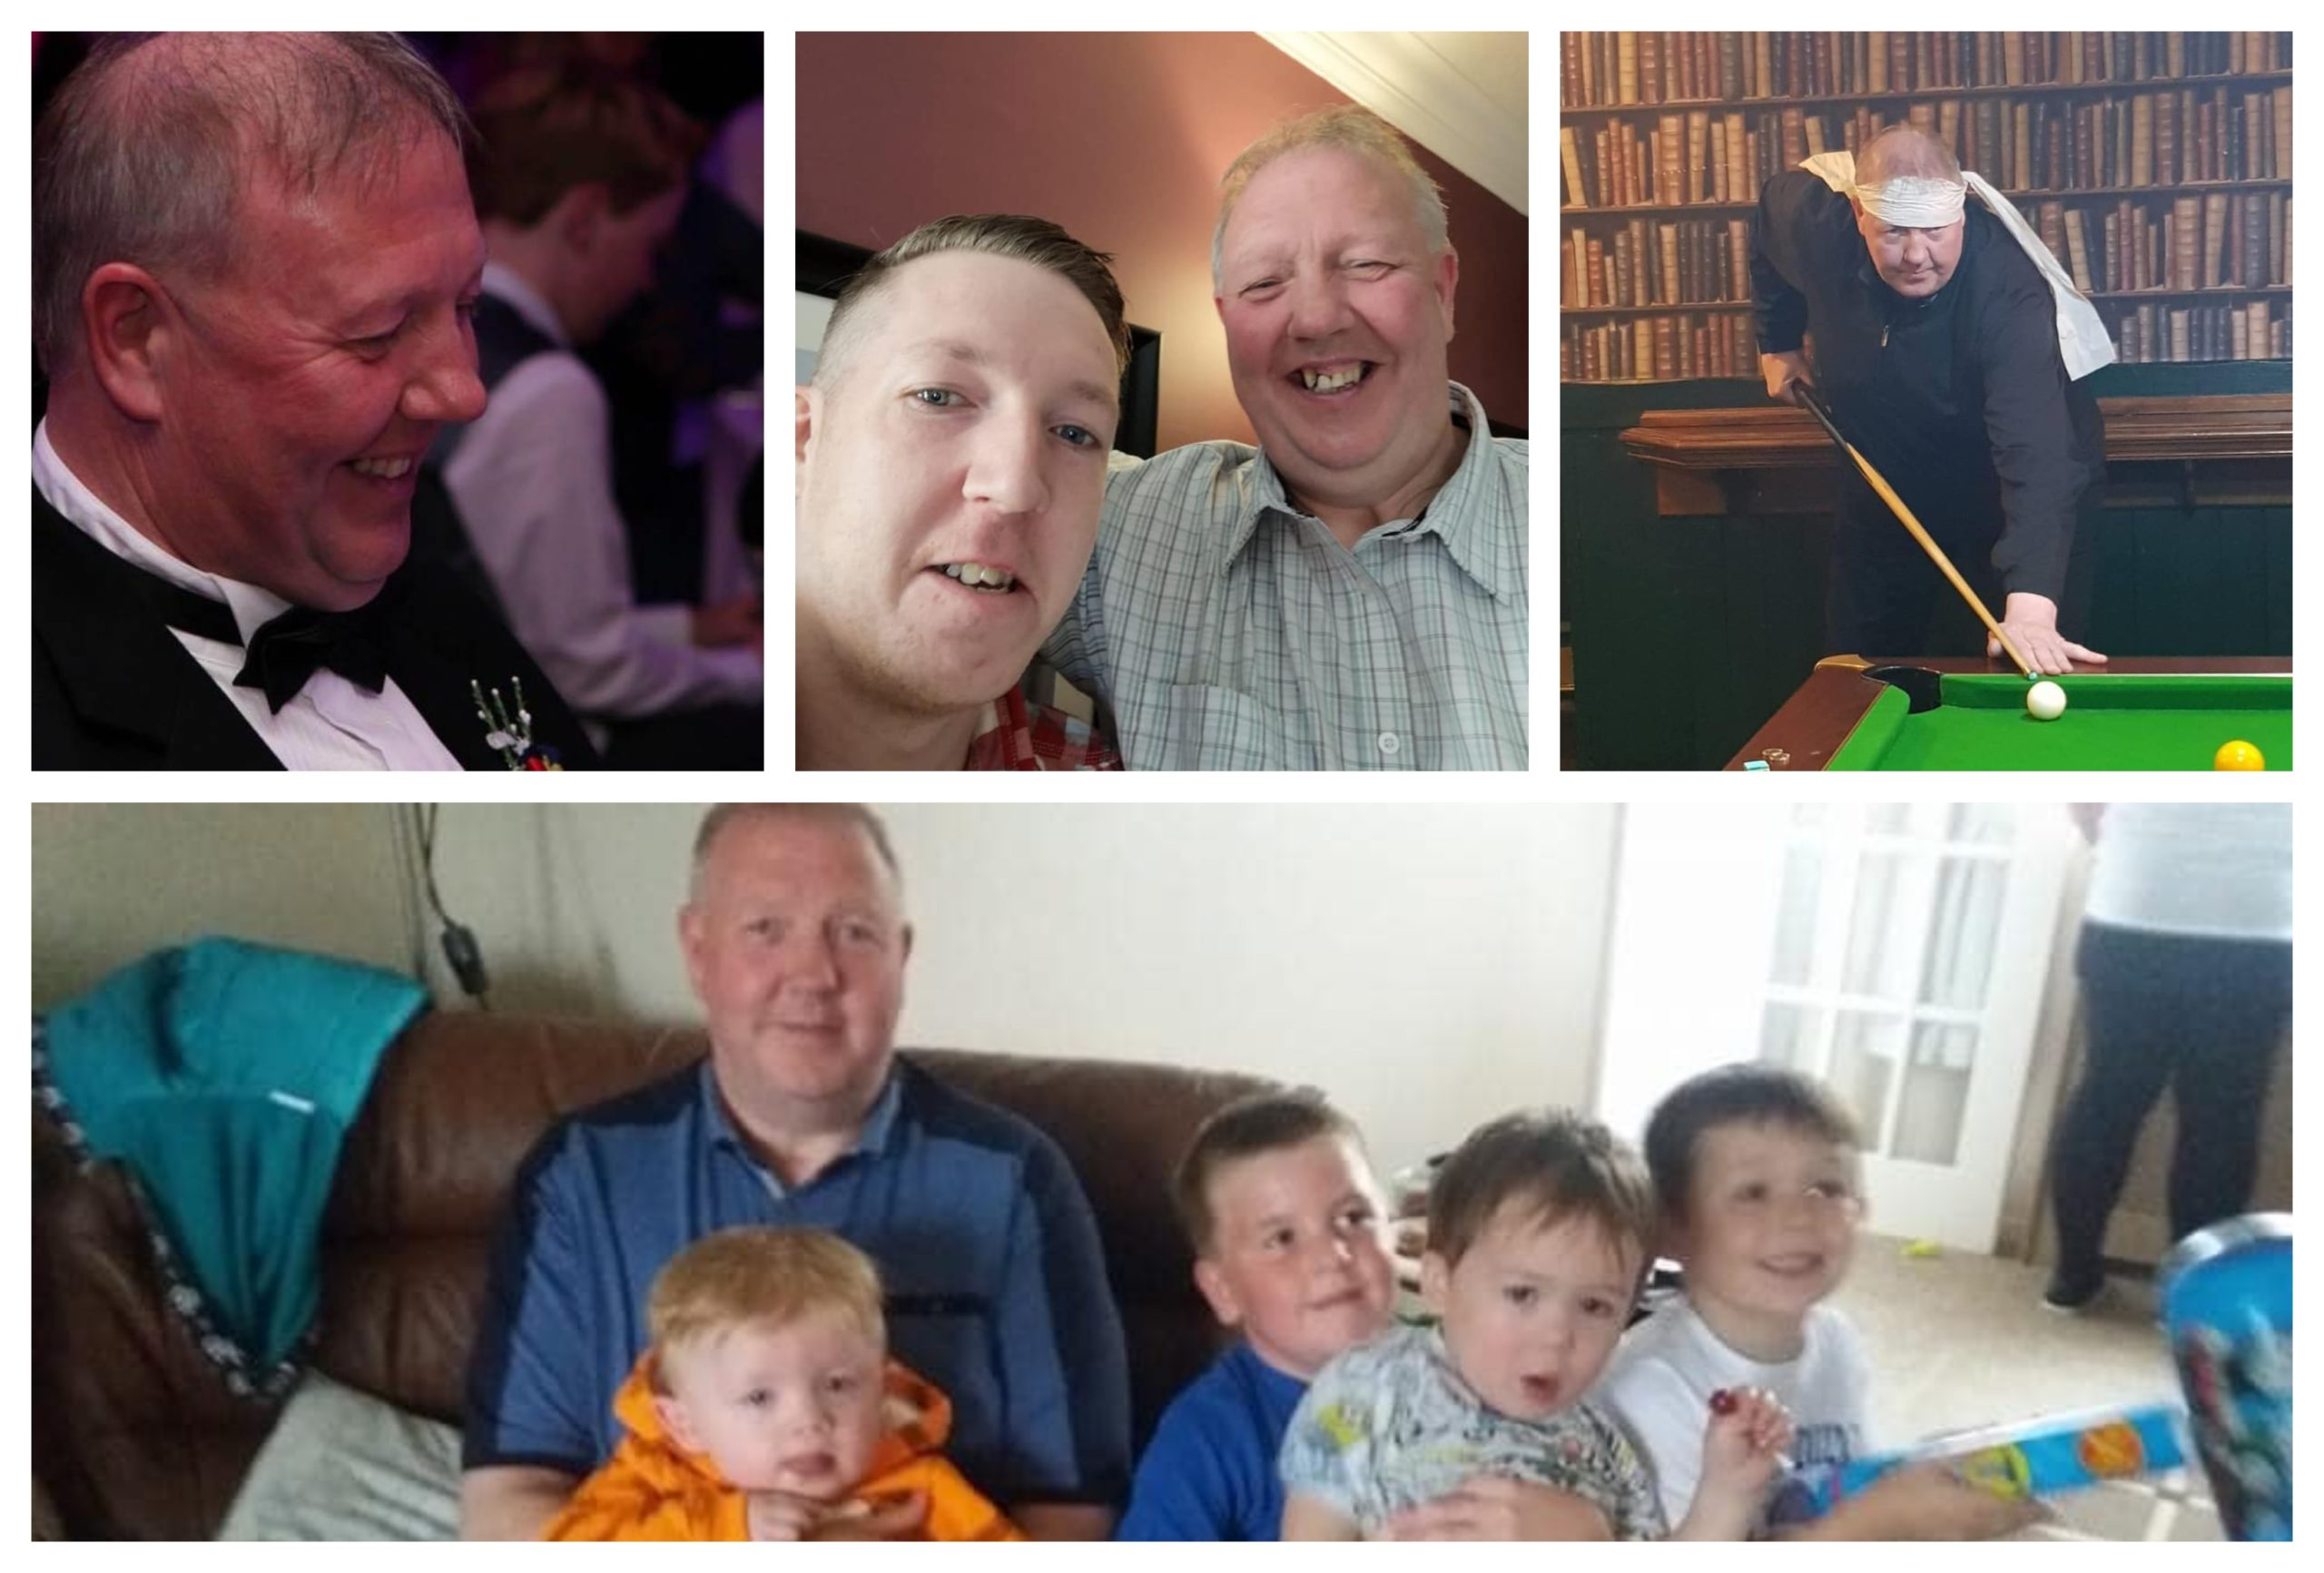 George White died after being diagnosed with Covid-19.